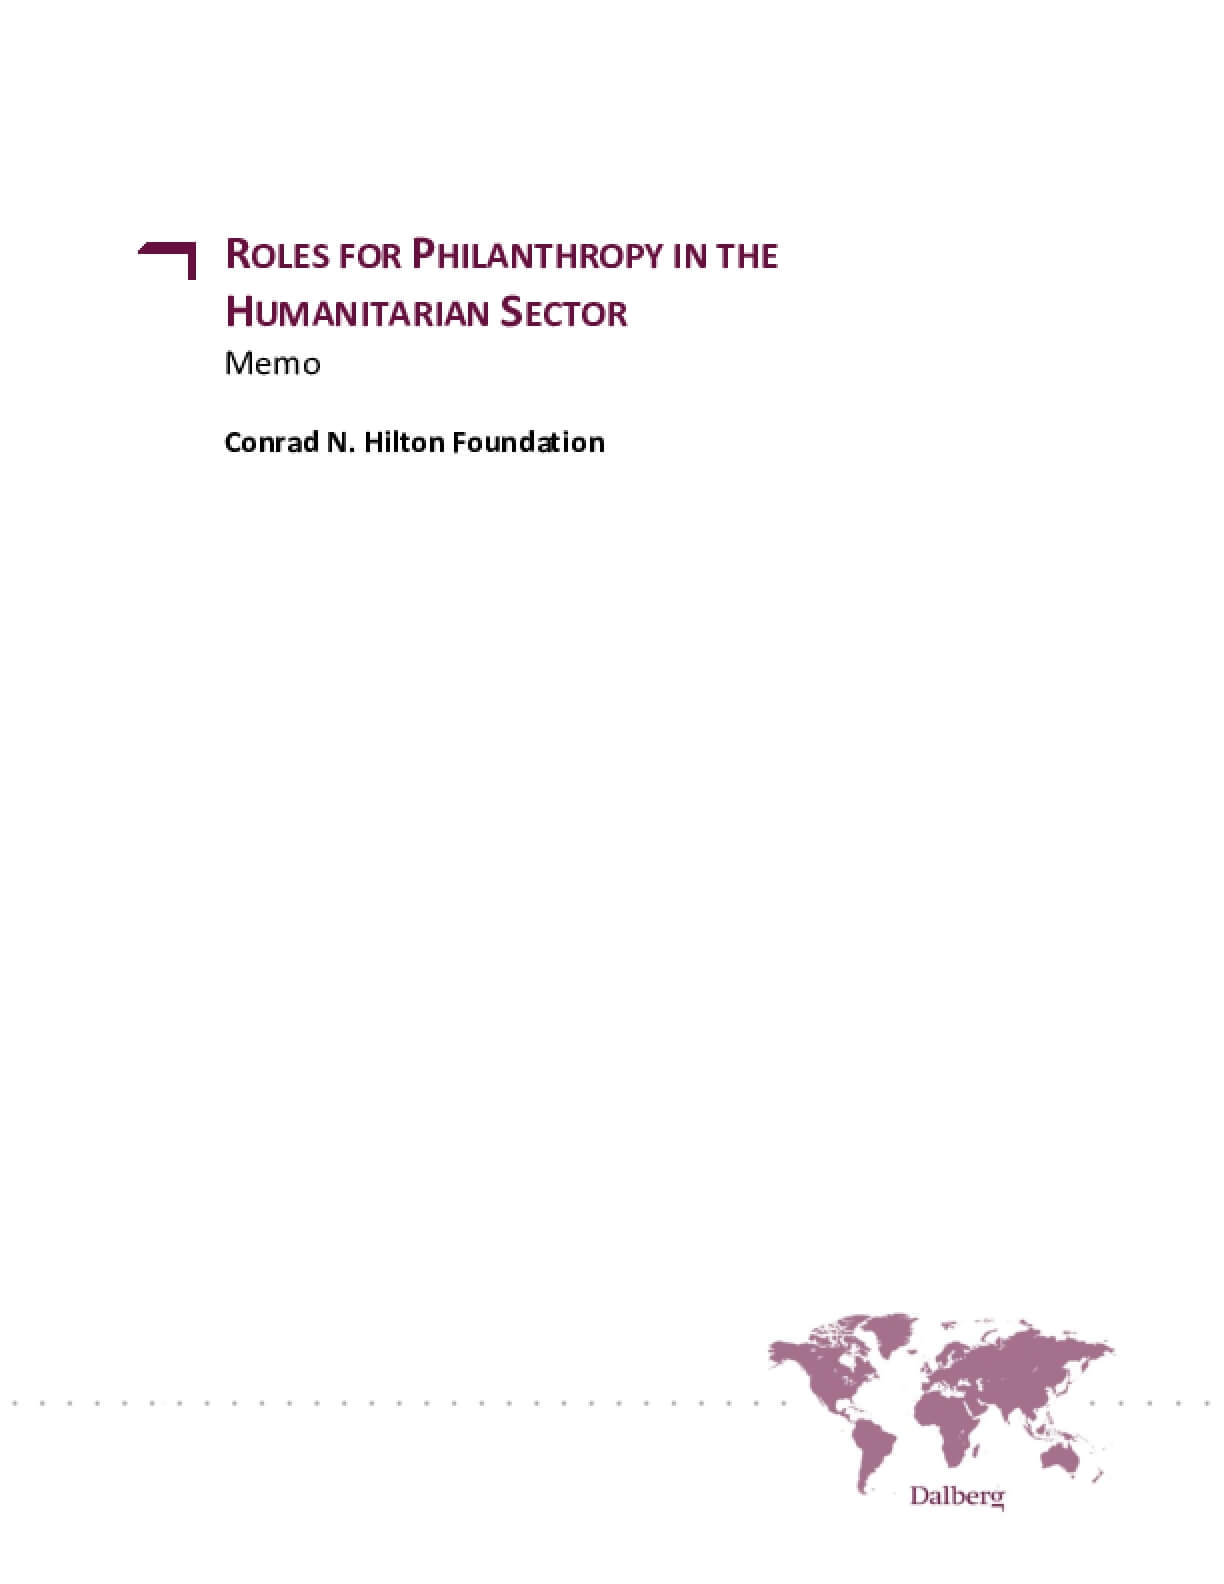 Roles for Philanthropy in the Humanitarian Sector: Memo